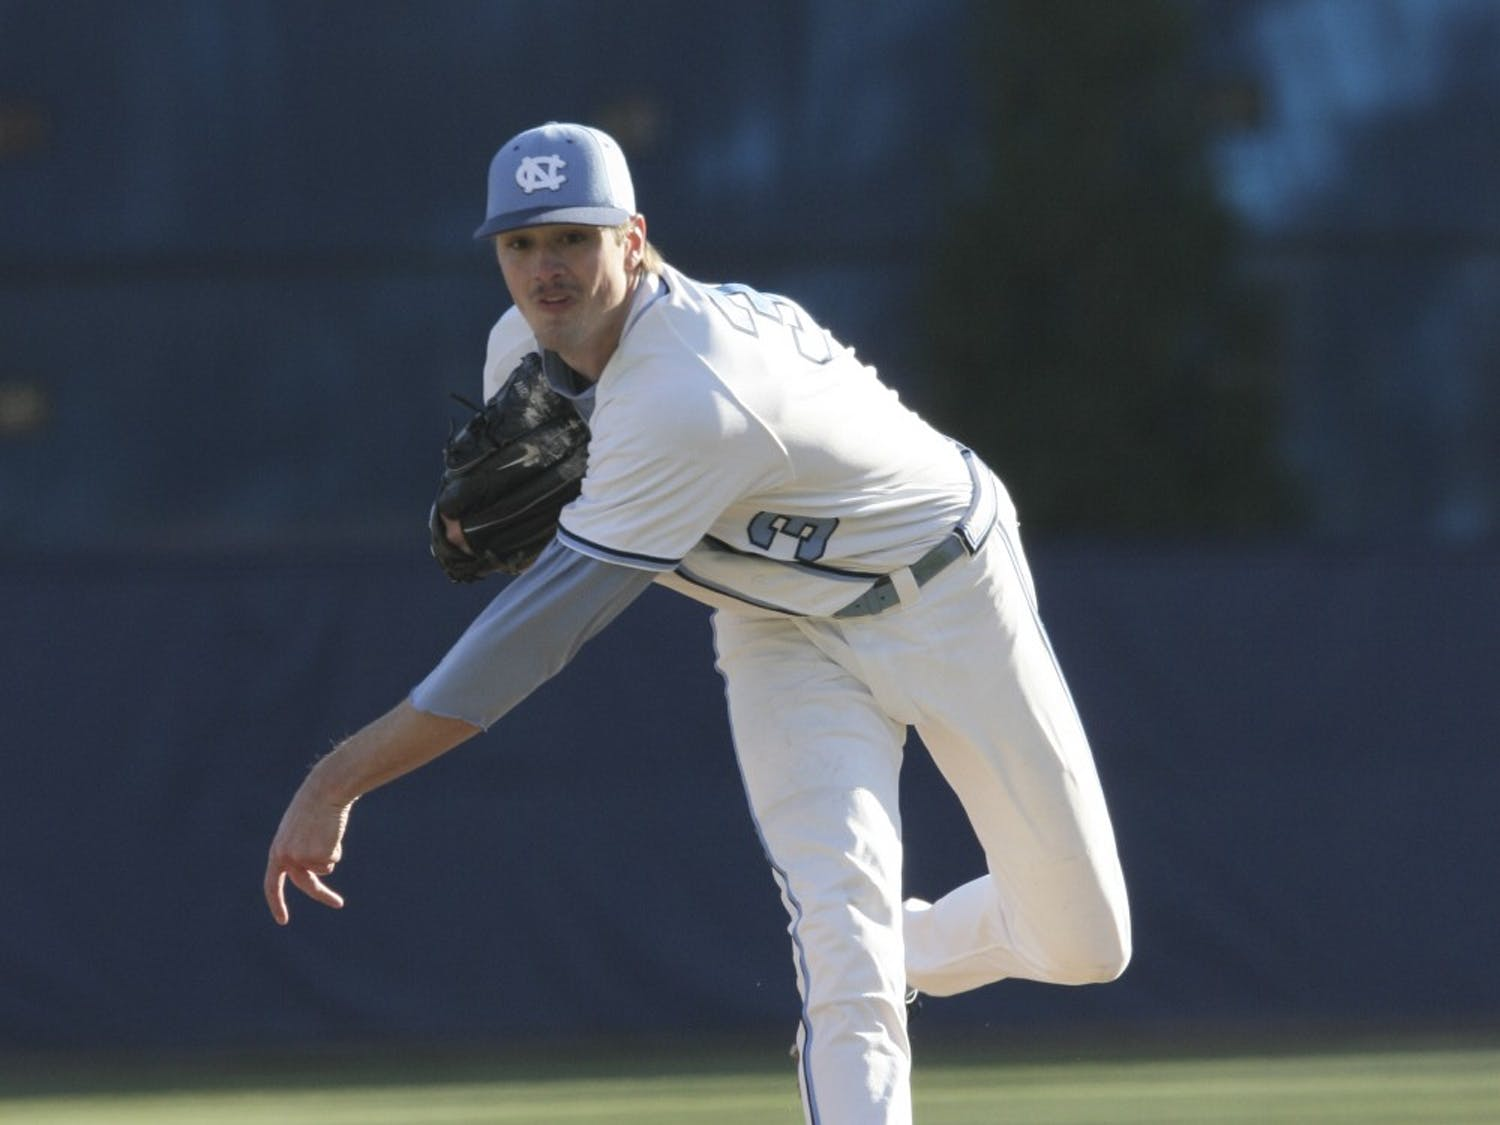 Andrew Miller pitches against Seton Hall on February 19, 2006. Miller played for the UNC baseball team from 2004 to 2006.